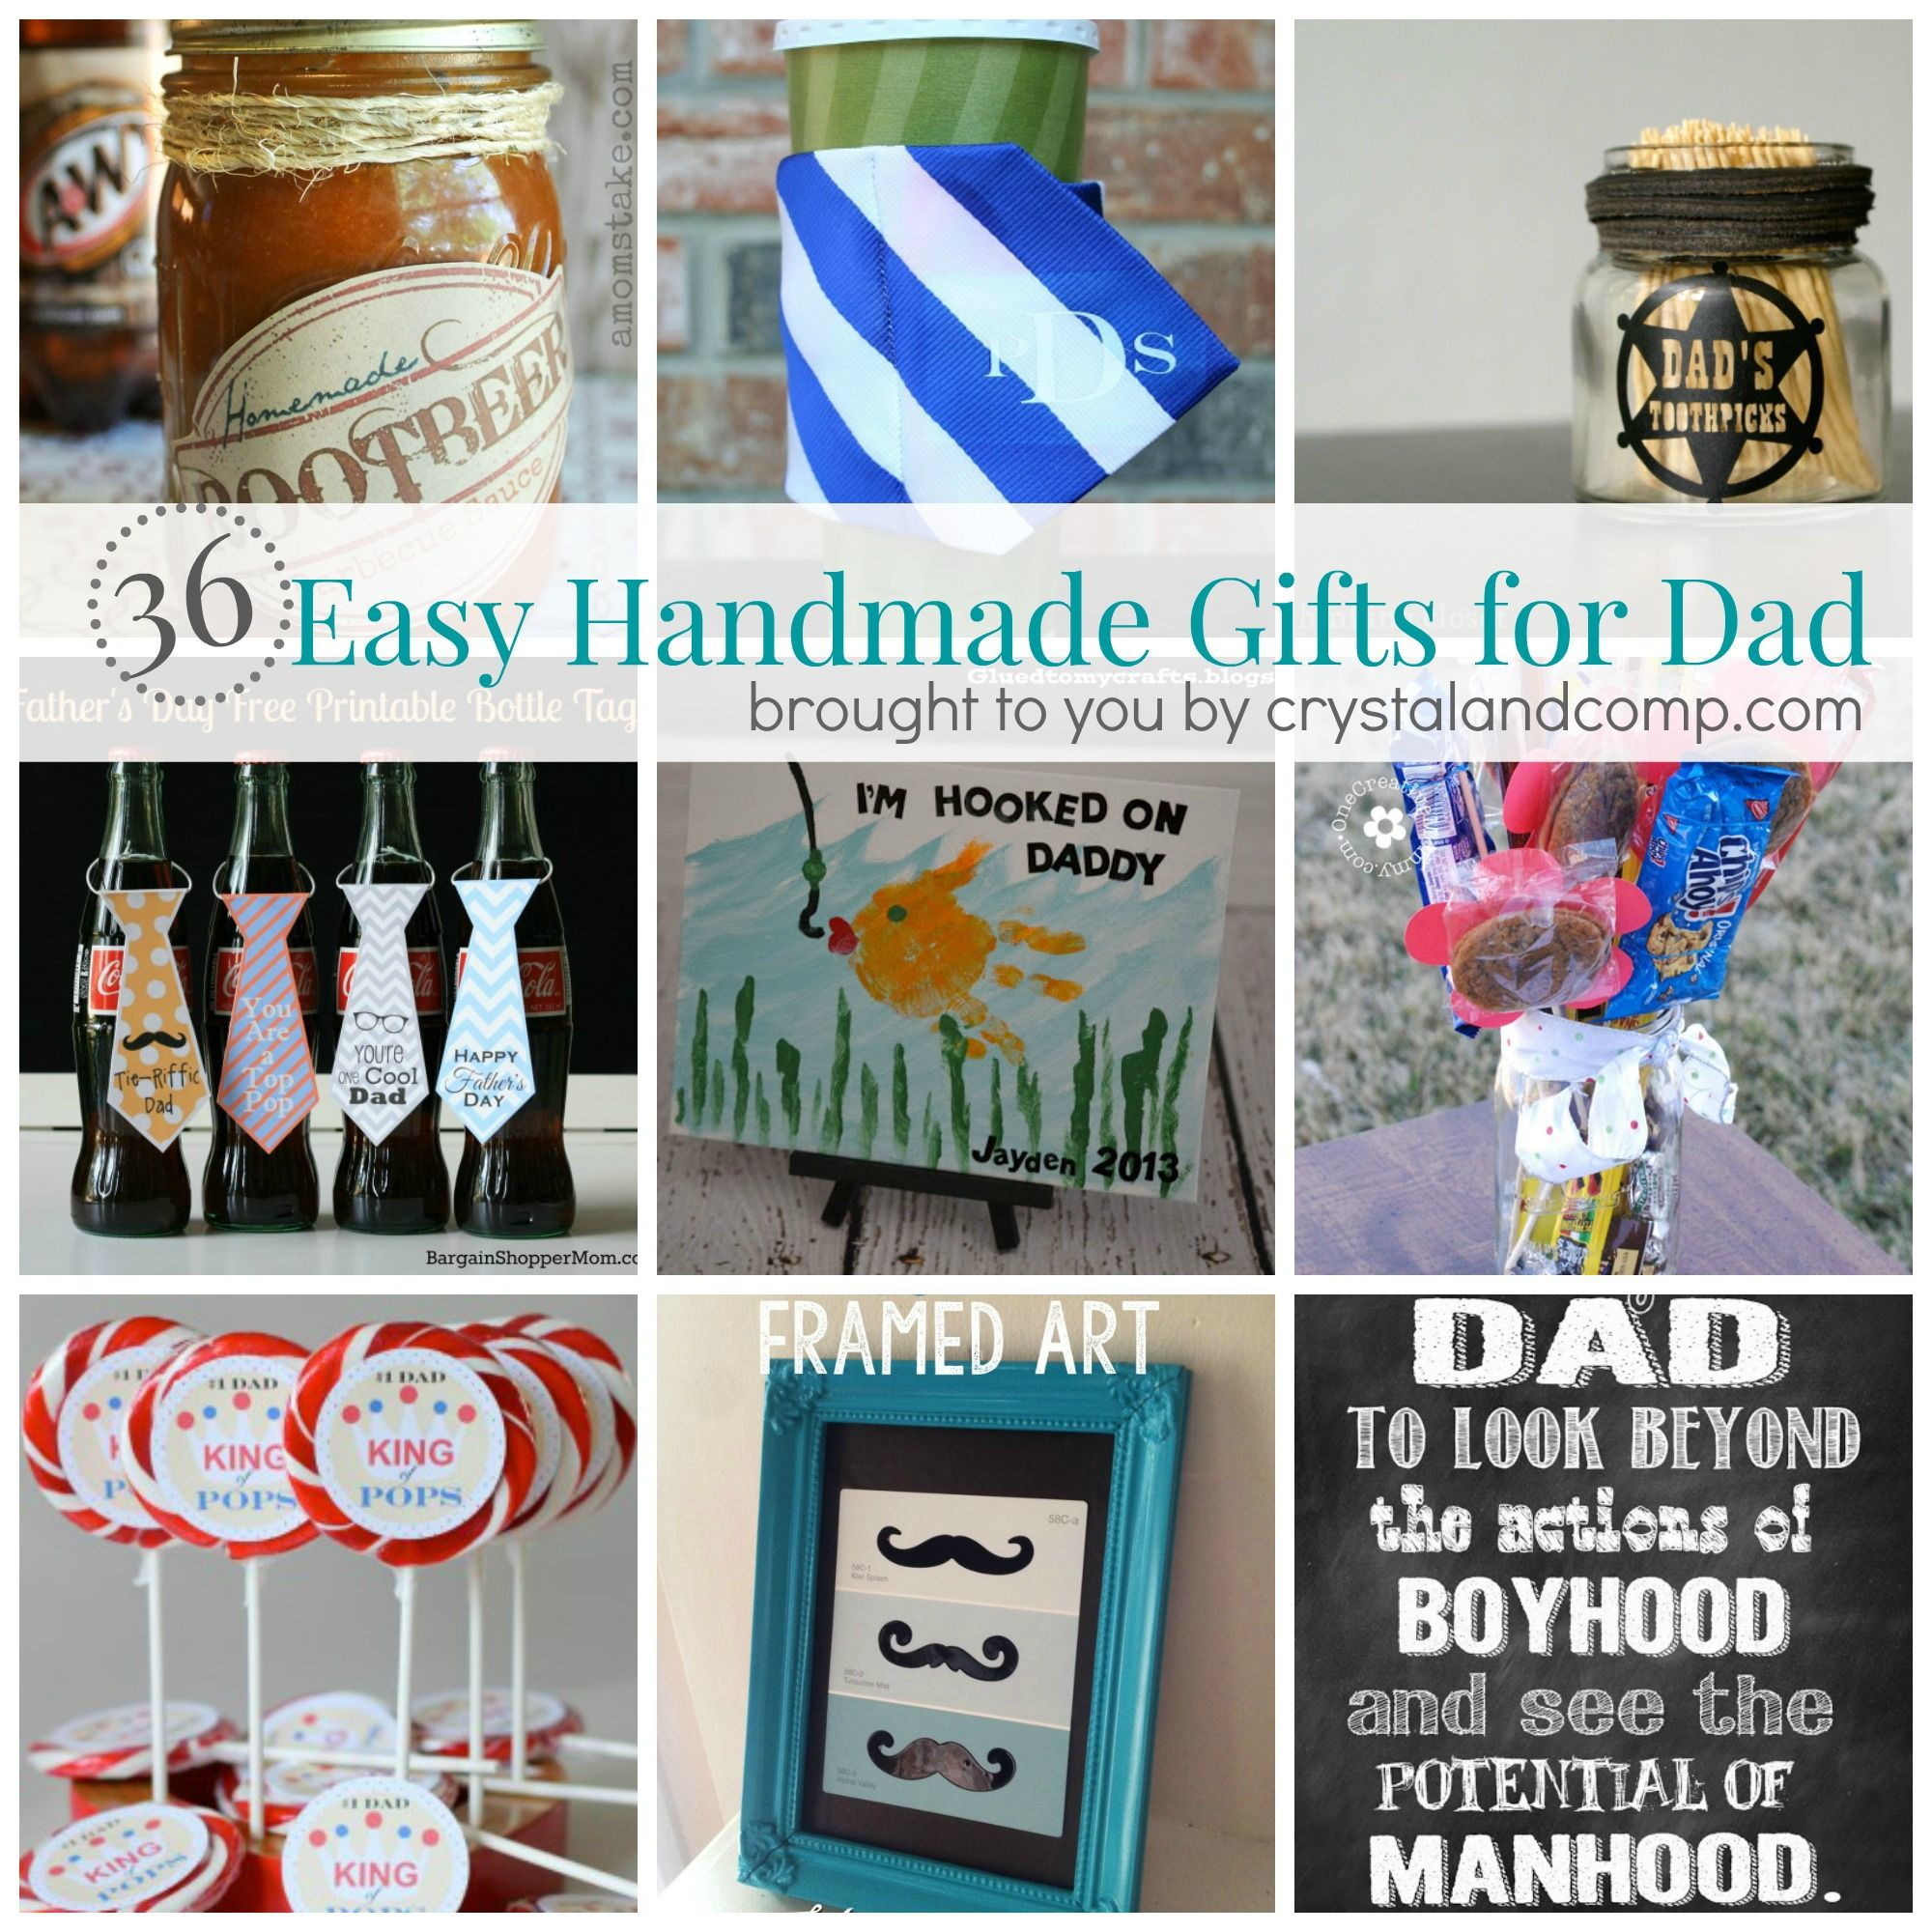 36 easy handmade gift ideas for dad | family activities & fun